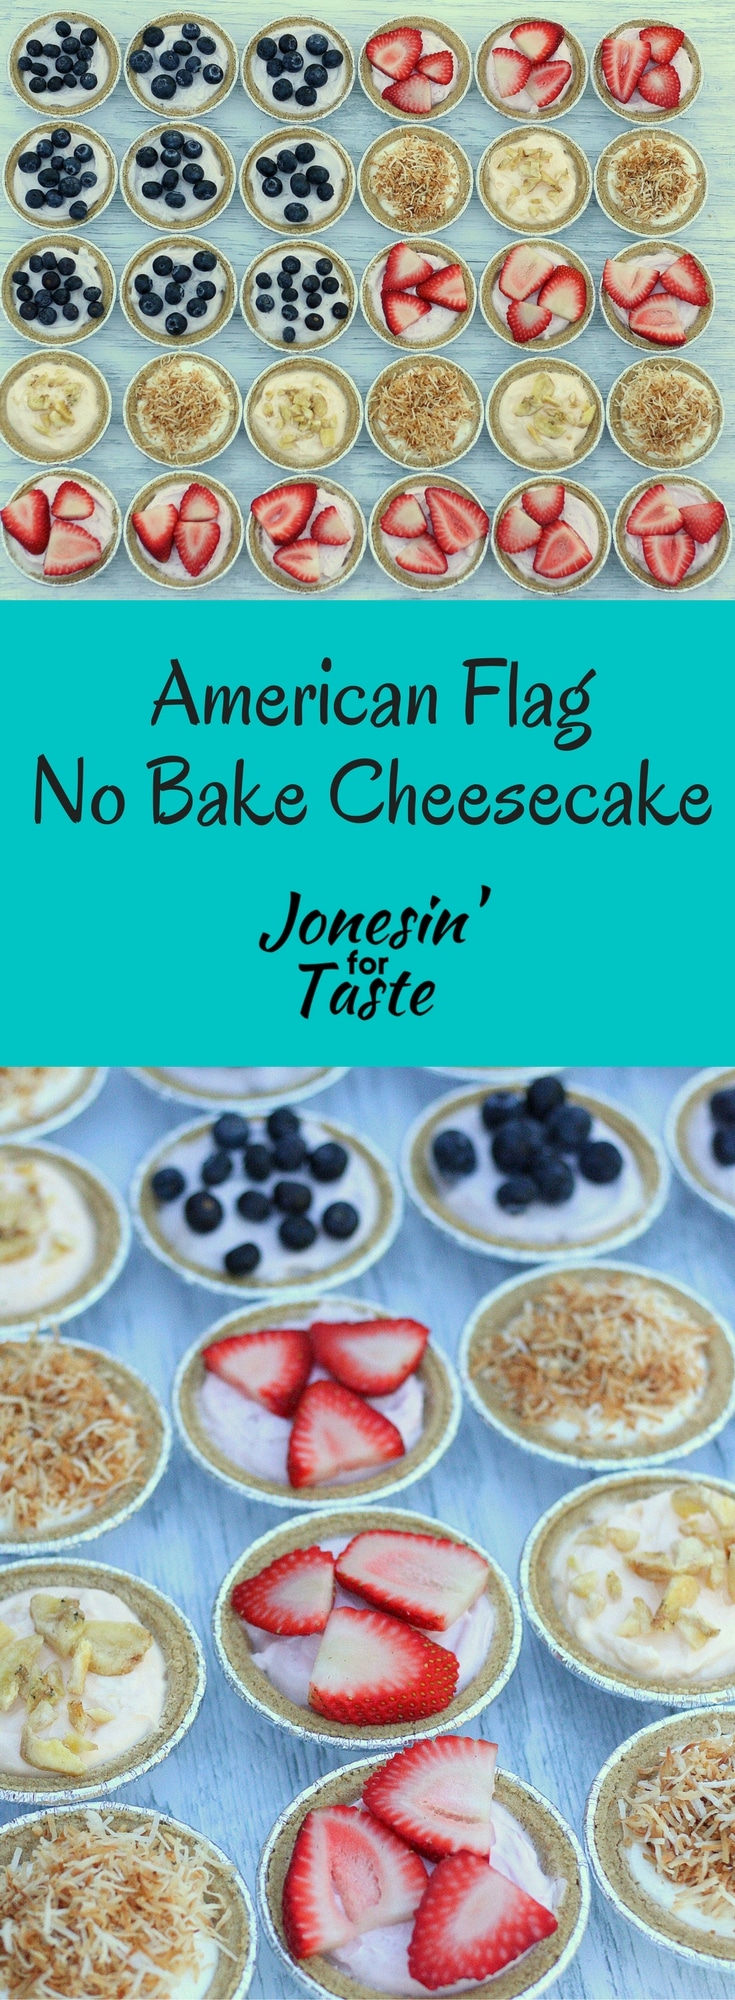 Incredibly easy and with minimal ingredients, this American Flag No Bake Cheesecake .